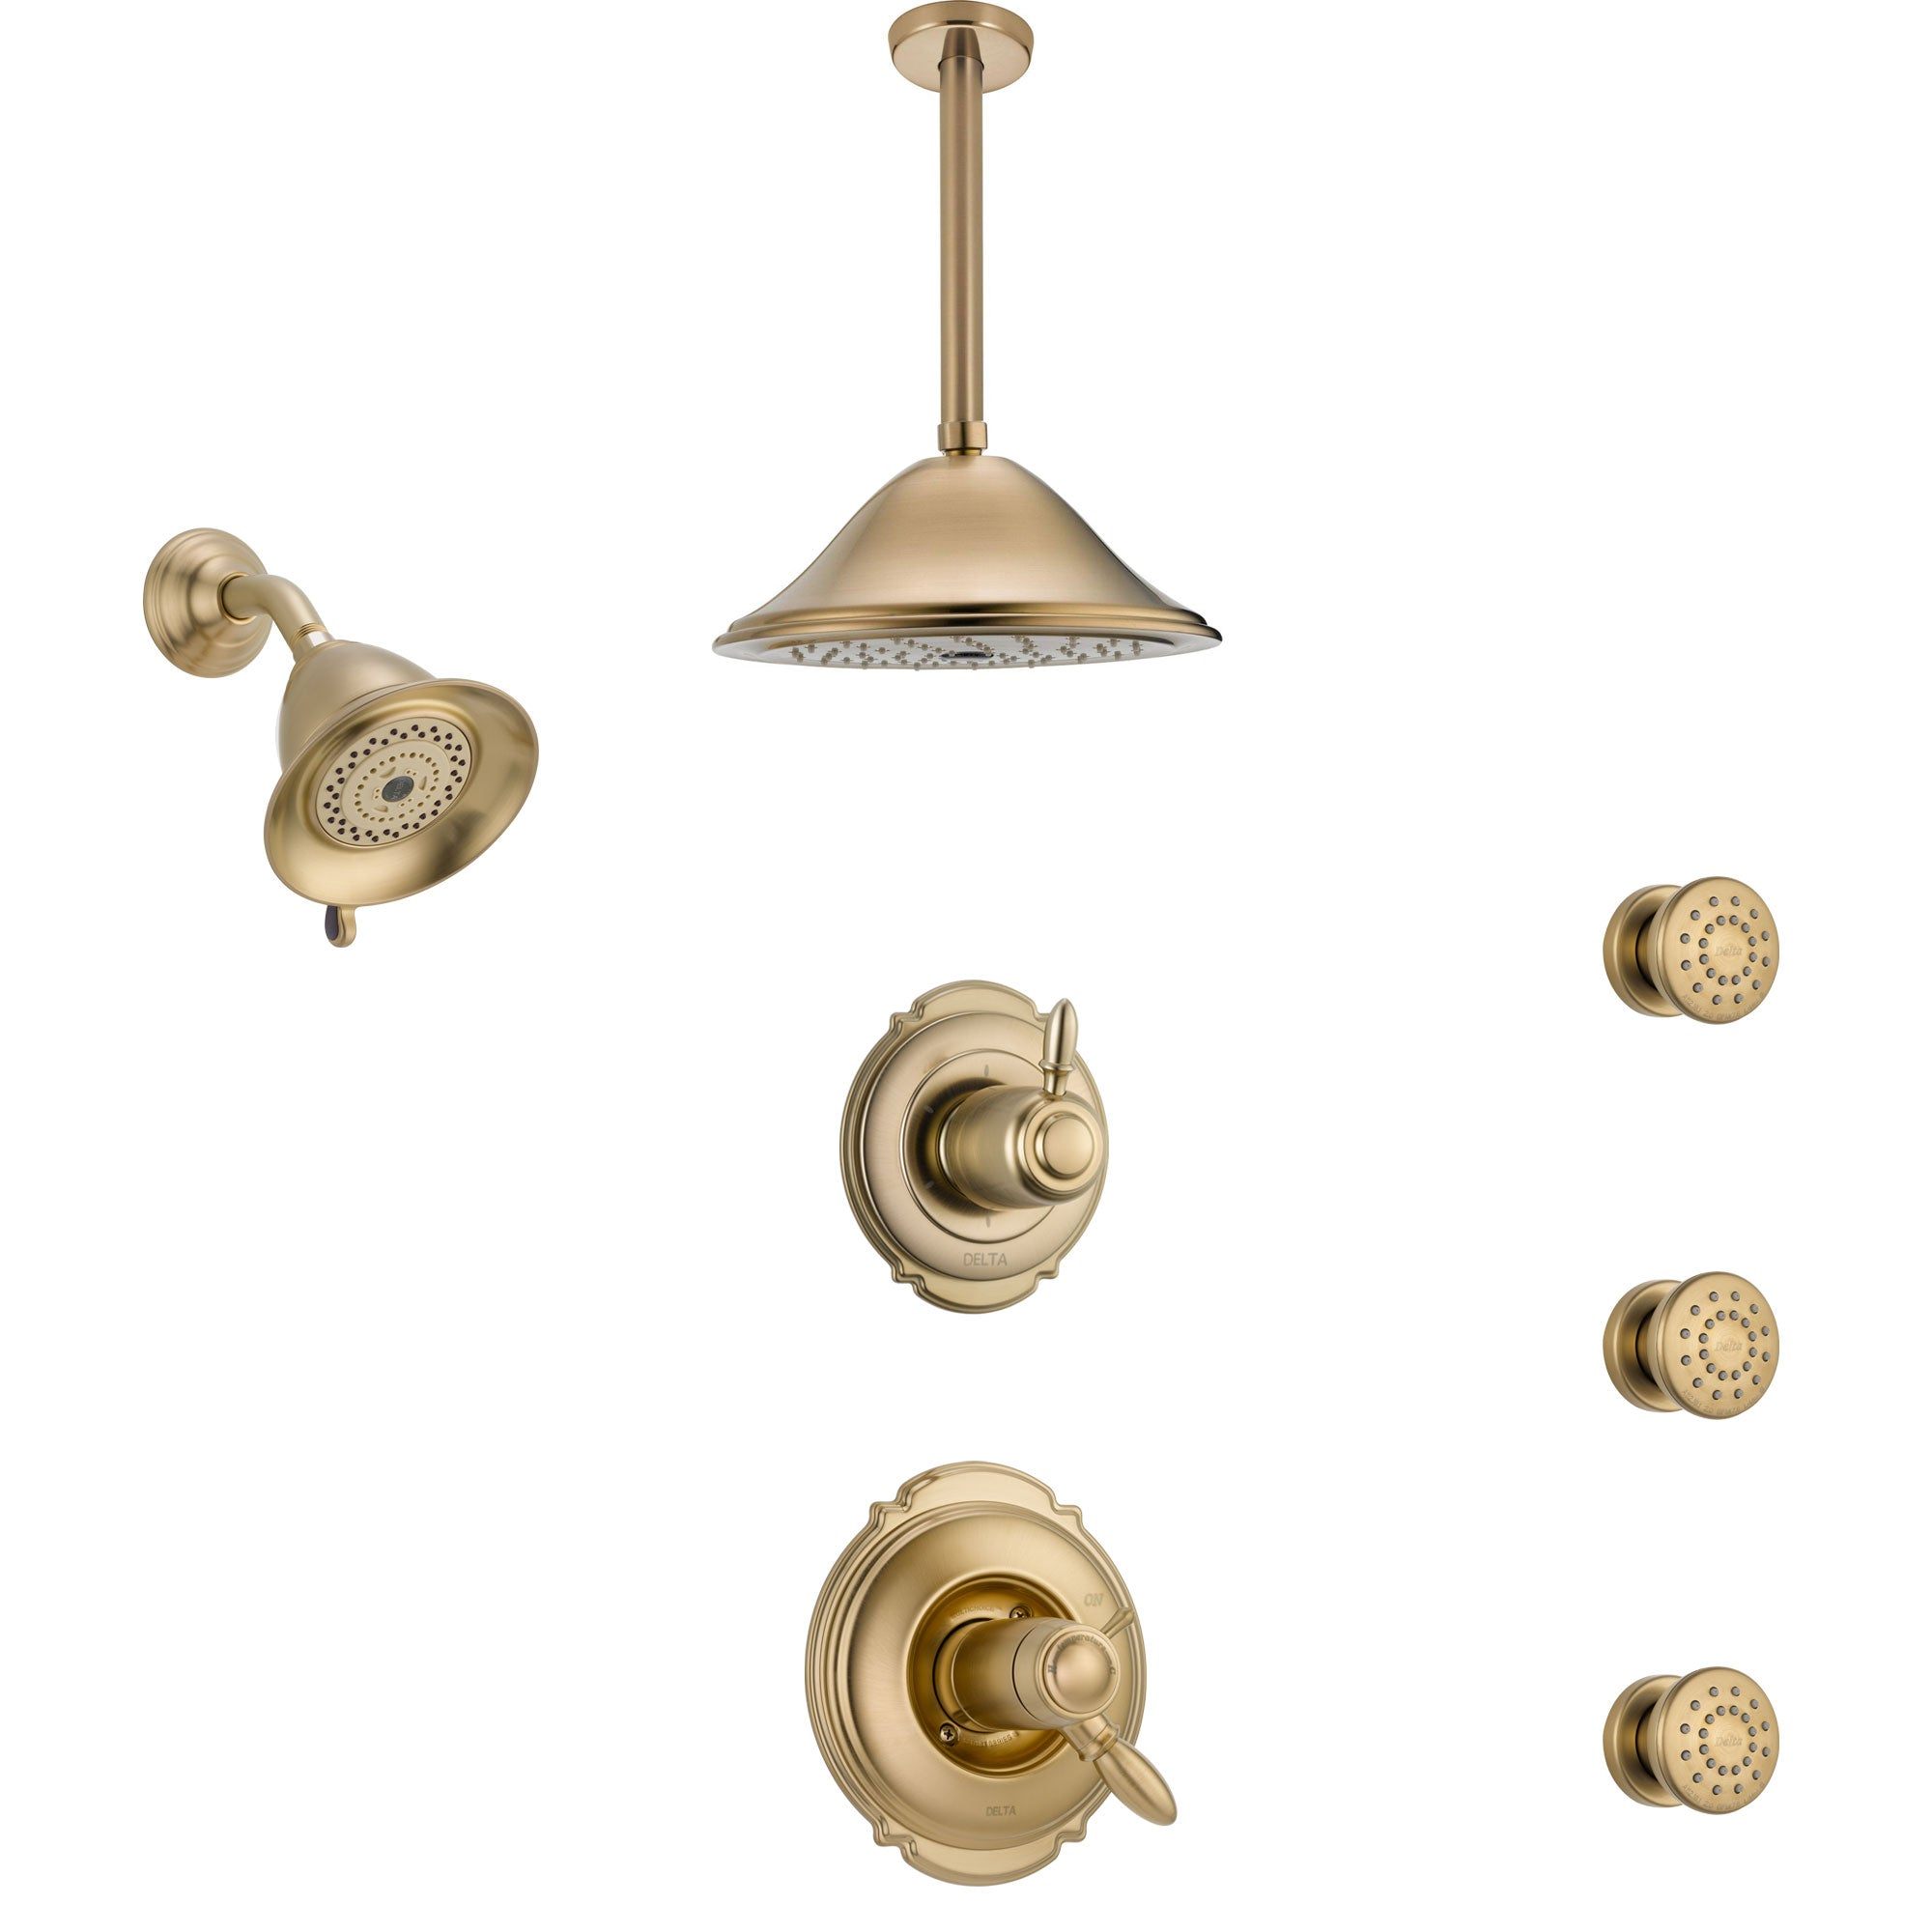 Delta Victorian Dual Thermostatic Control Champagne Bronze Shower System, Diverter, Showerhead, Ceiling Showerhead, and 3 Body Sprays SS17T2551CZ3